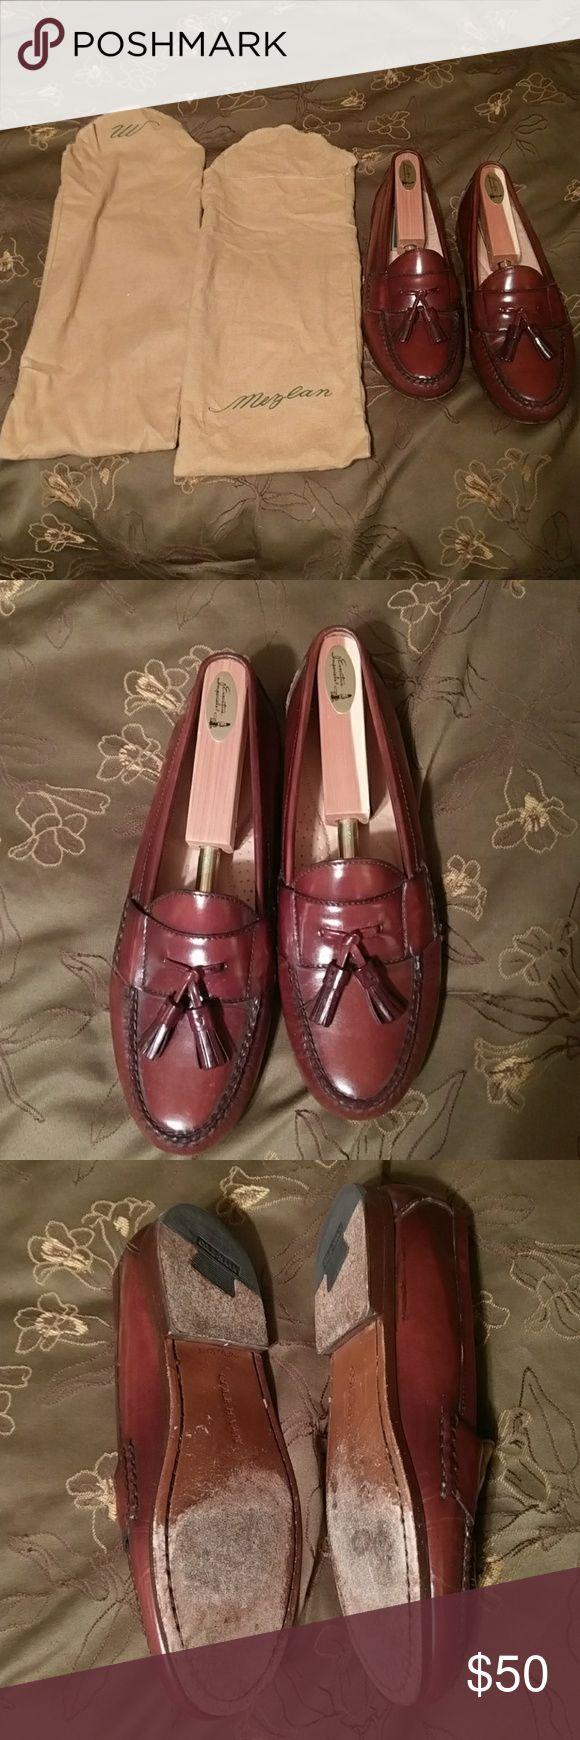 Colehaan men s shoes legit vintage leather loafers with mezlan cloth storage bags executive imperial s shoe